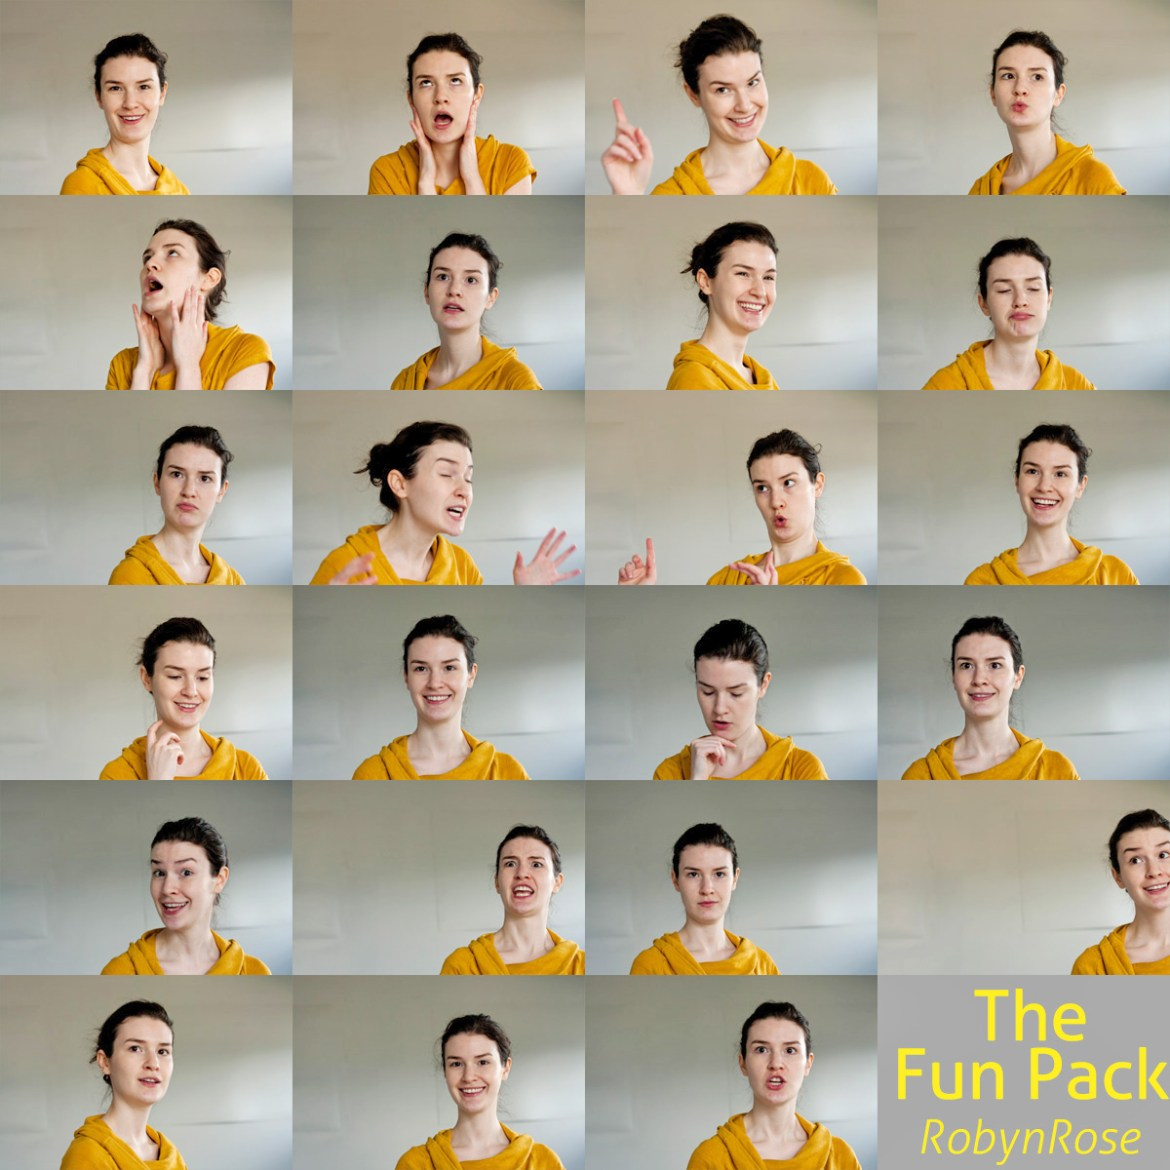 Robyn Rose, The Fun Pack